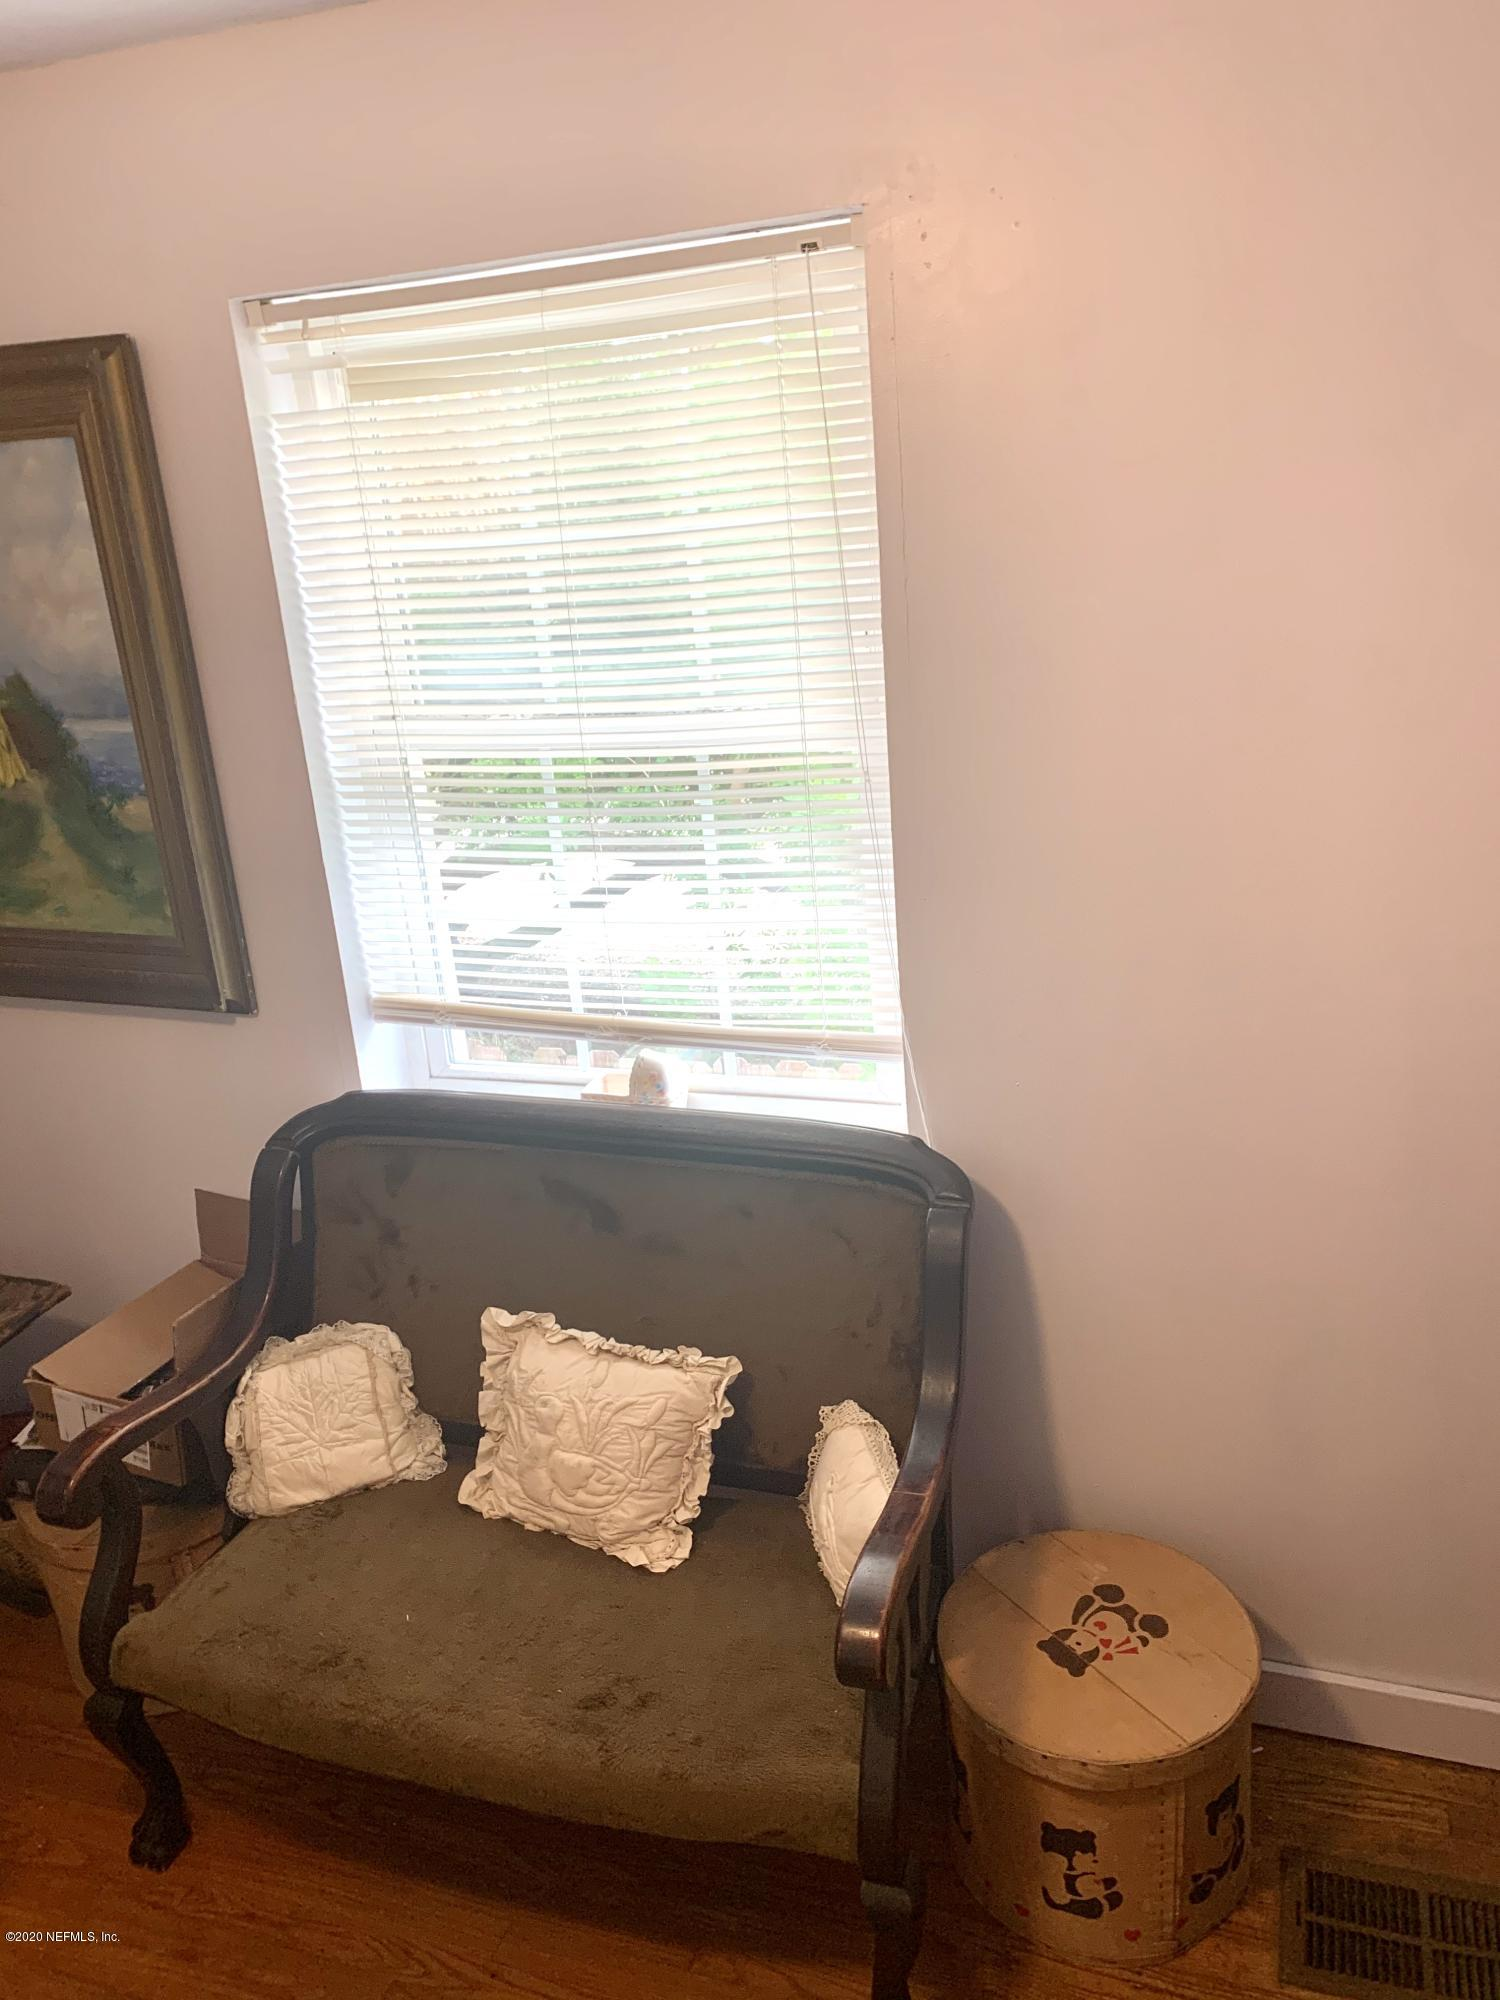 11 13TH, ST AUGUSTINE, FLORIDA 32080, 3 Bedrooms Bedrooms, ,2 BathroomsBathrooms,Residential,For sale,13TH,1049336